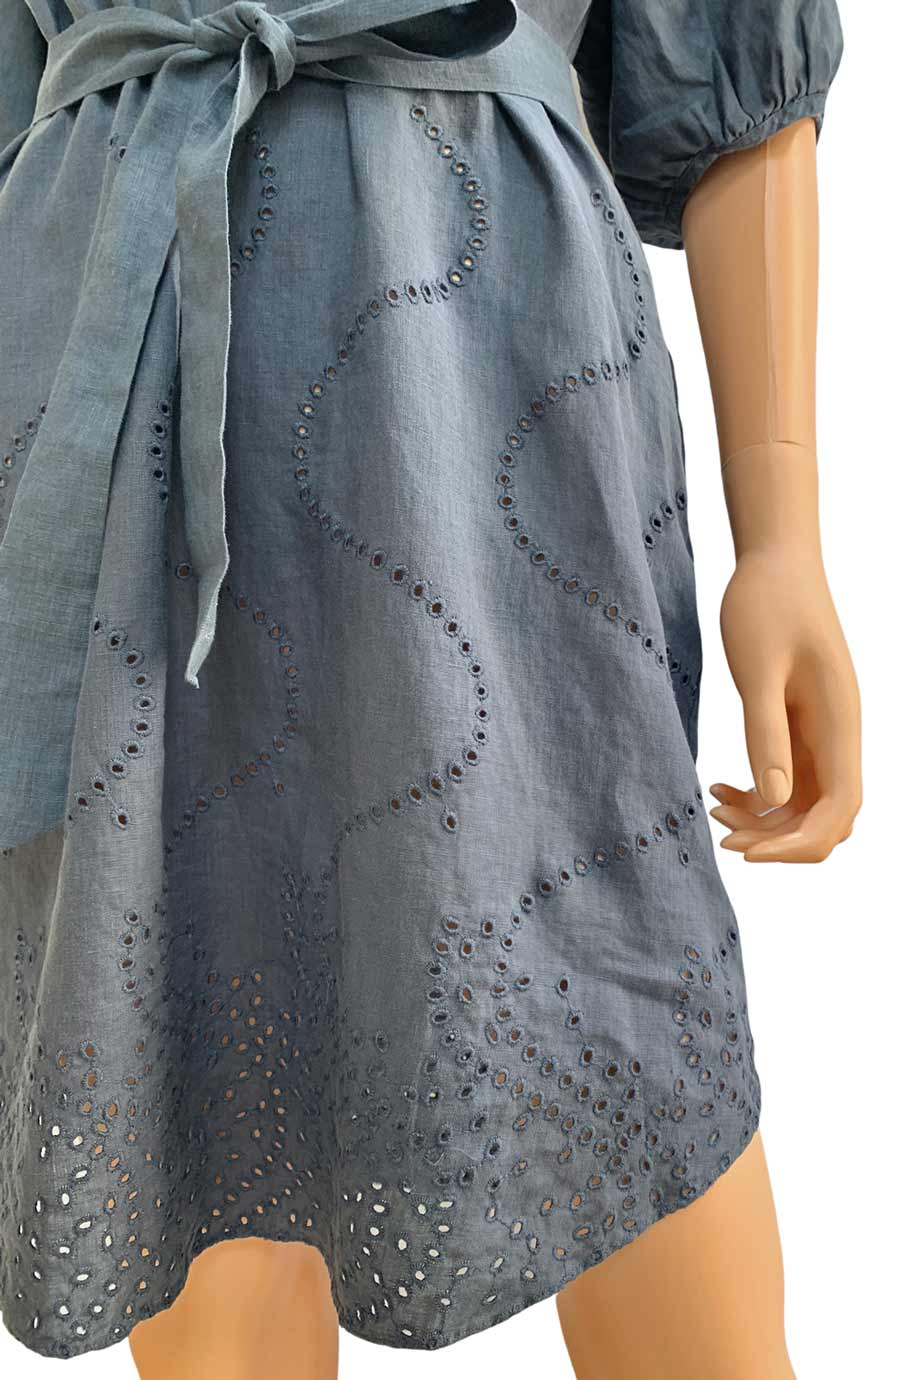 Diane von Furstenberg Gray Linen Kyle Cover Up Dress / Sz M